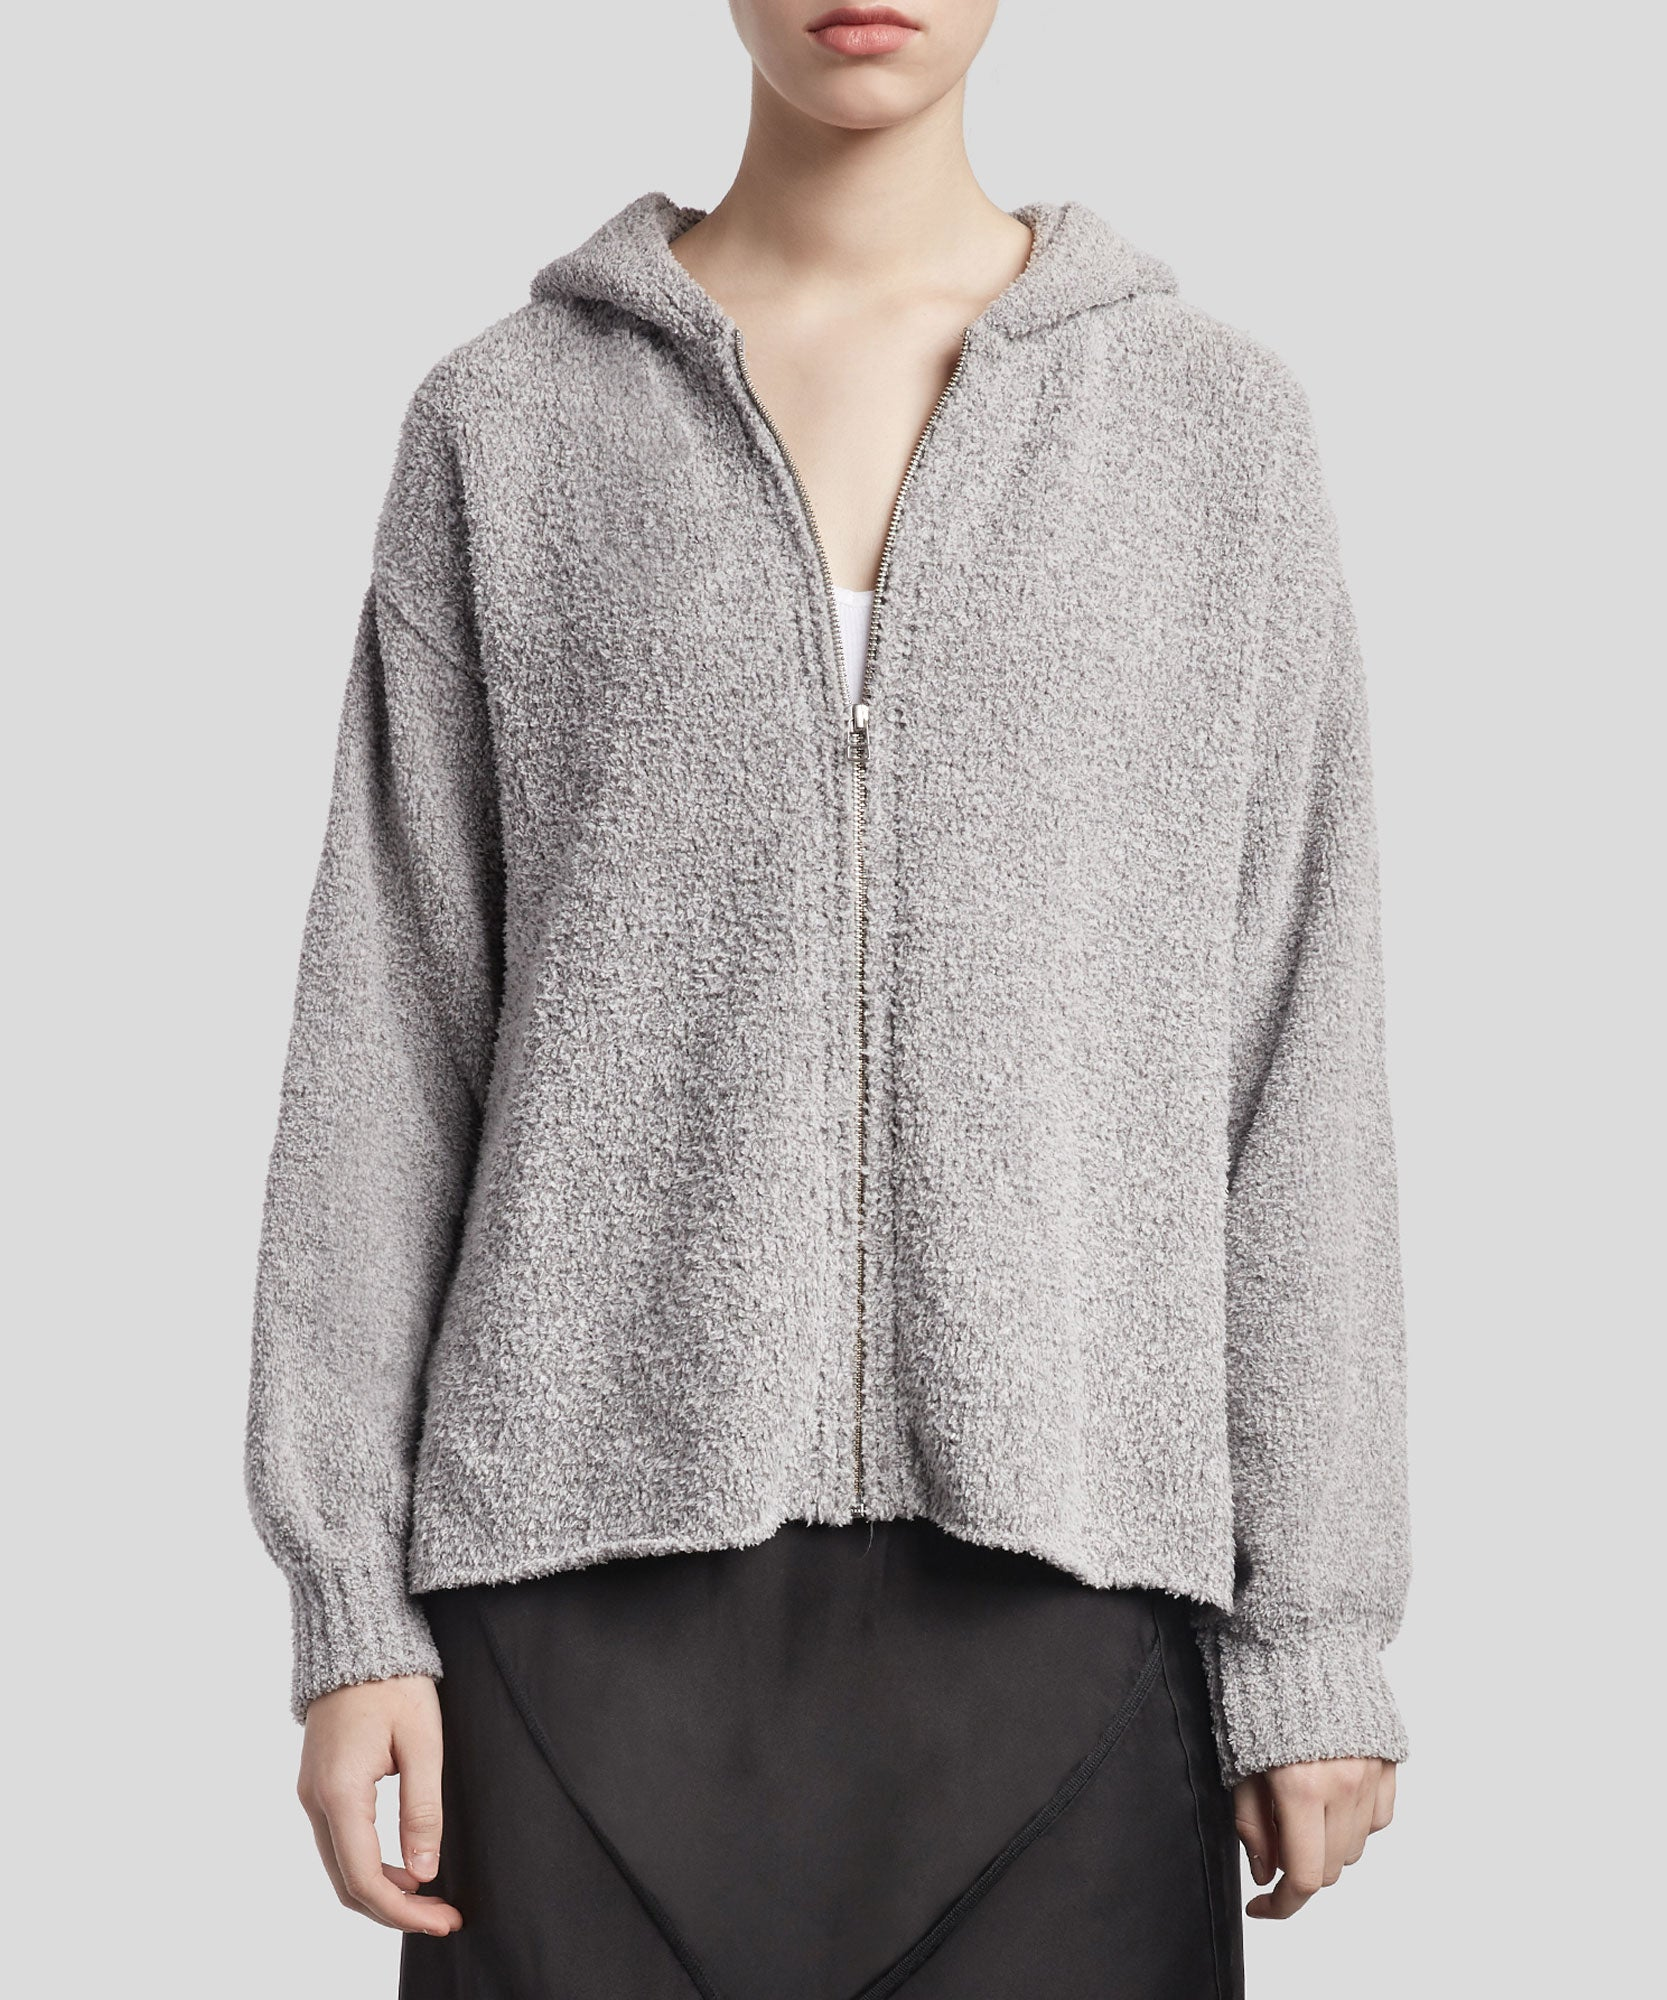 Heather Grey Chenille Zip-Up Hoodie - Women's Luxe Hoodie by ATM Anthony Thomas Melillo